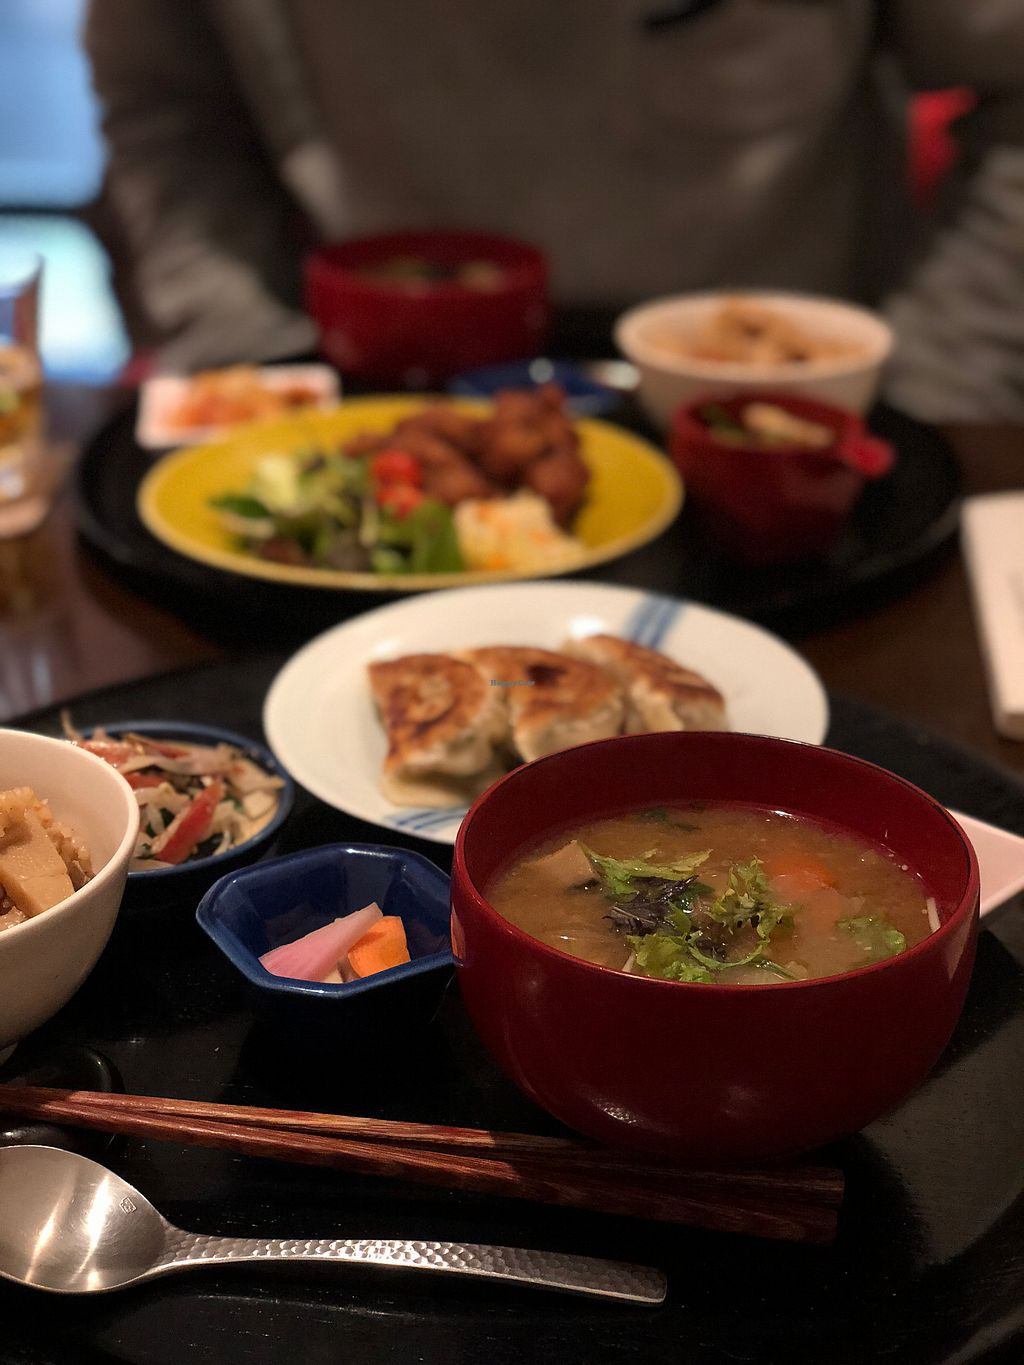 """Photo of Komenoko  by <a href=""""/members/profile/CarlyHitchcock"""">CarlyHitchcock</a> <br/>Delicious gyoza set! <br/> January 28, 2018  - <a href='/contact/abuse/image/46924/351948'>Report</a>"""